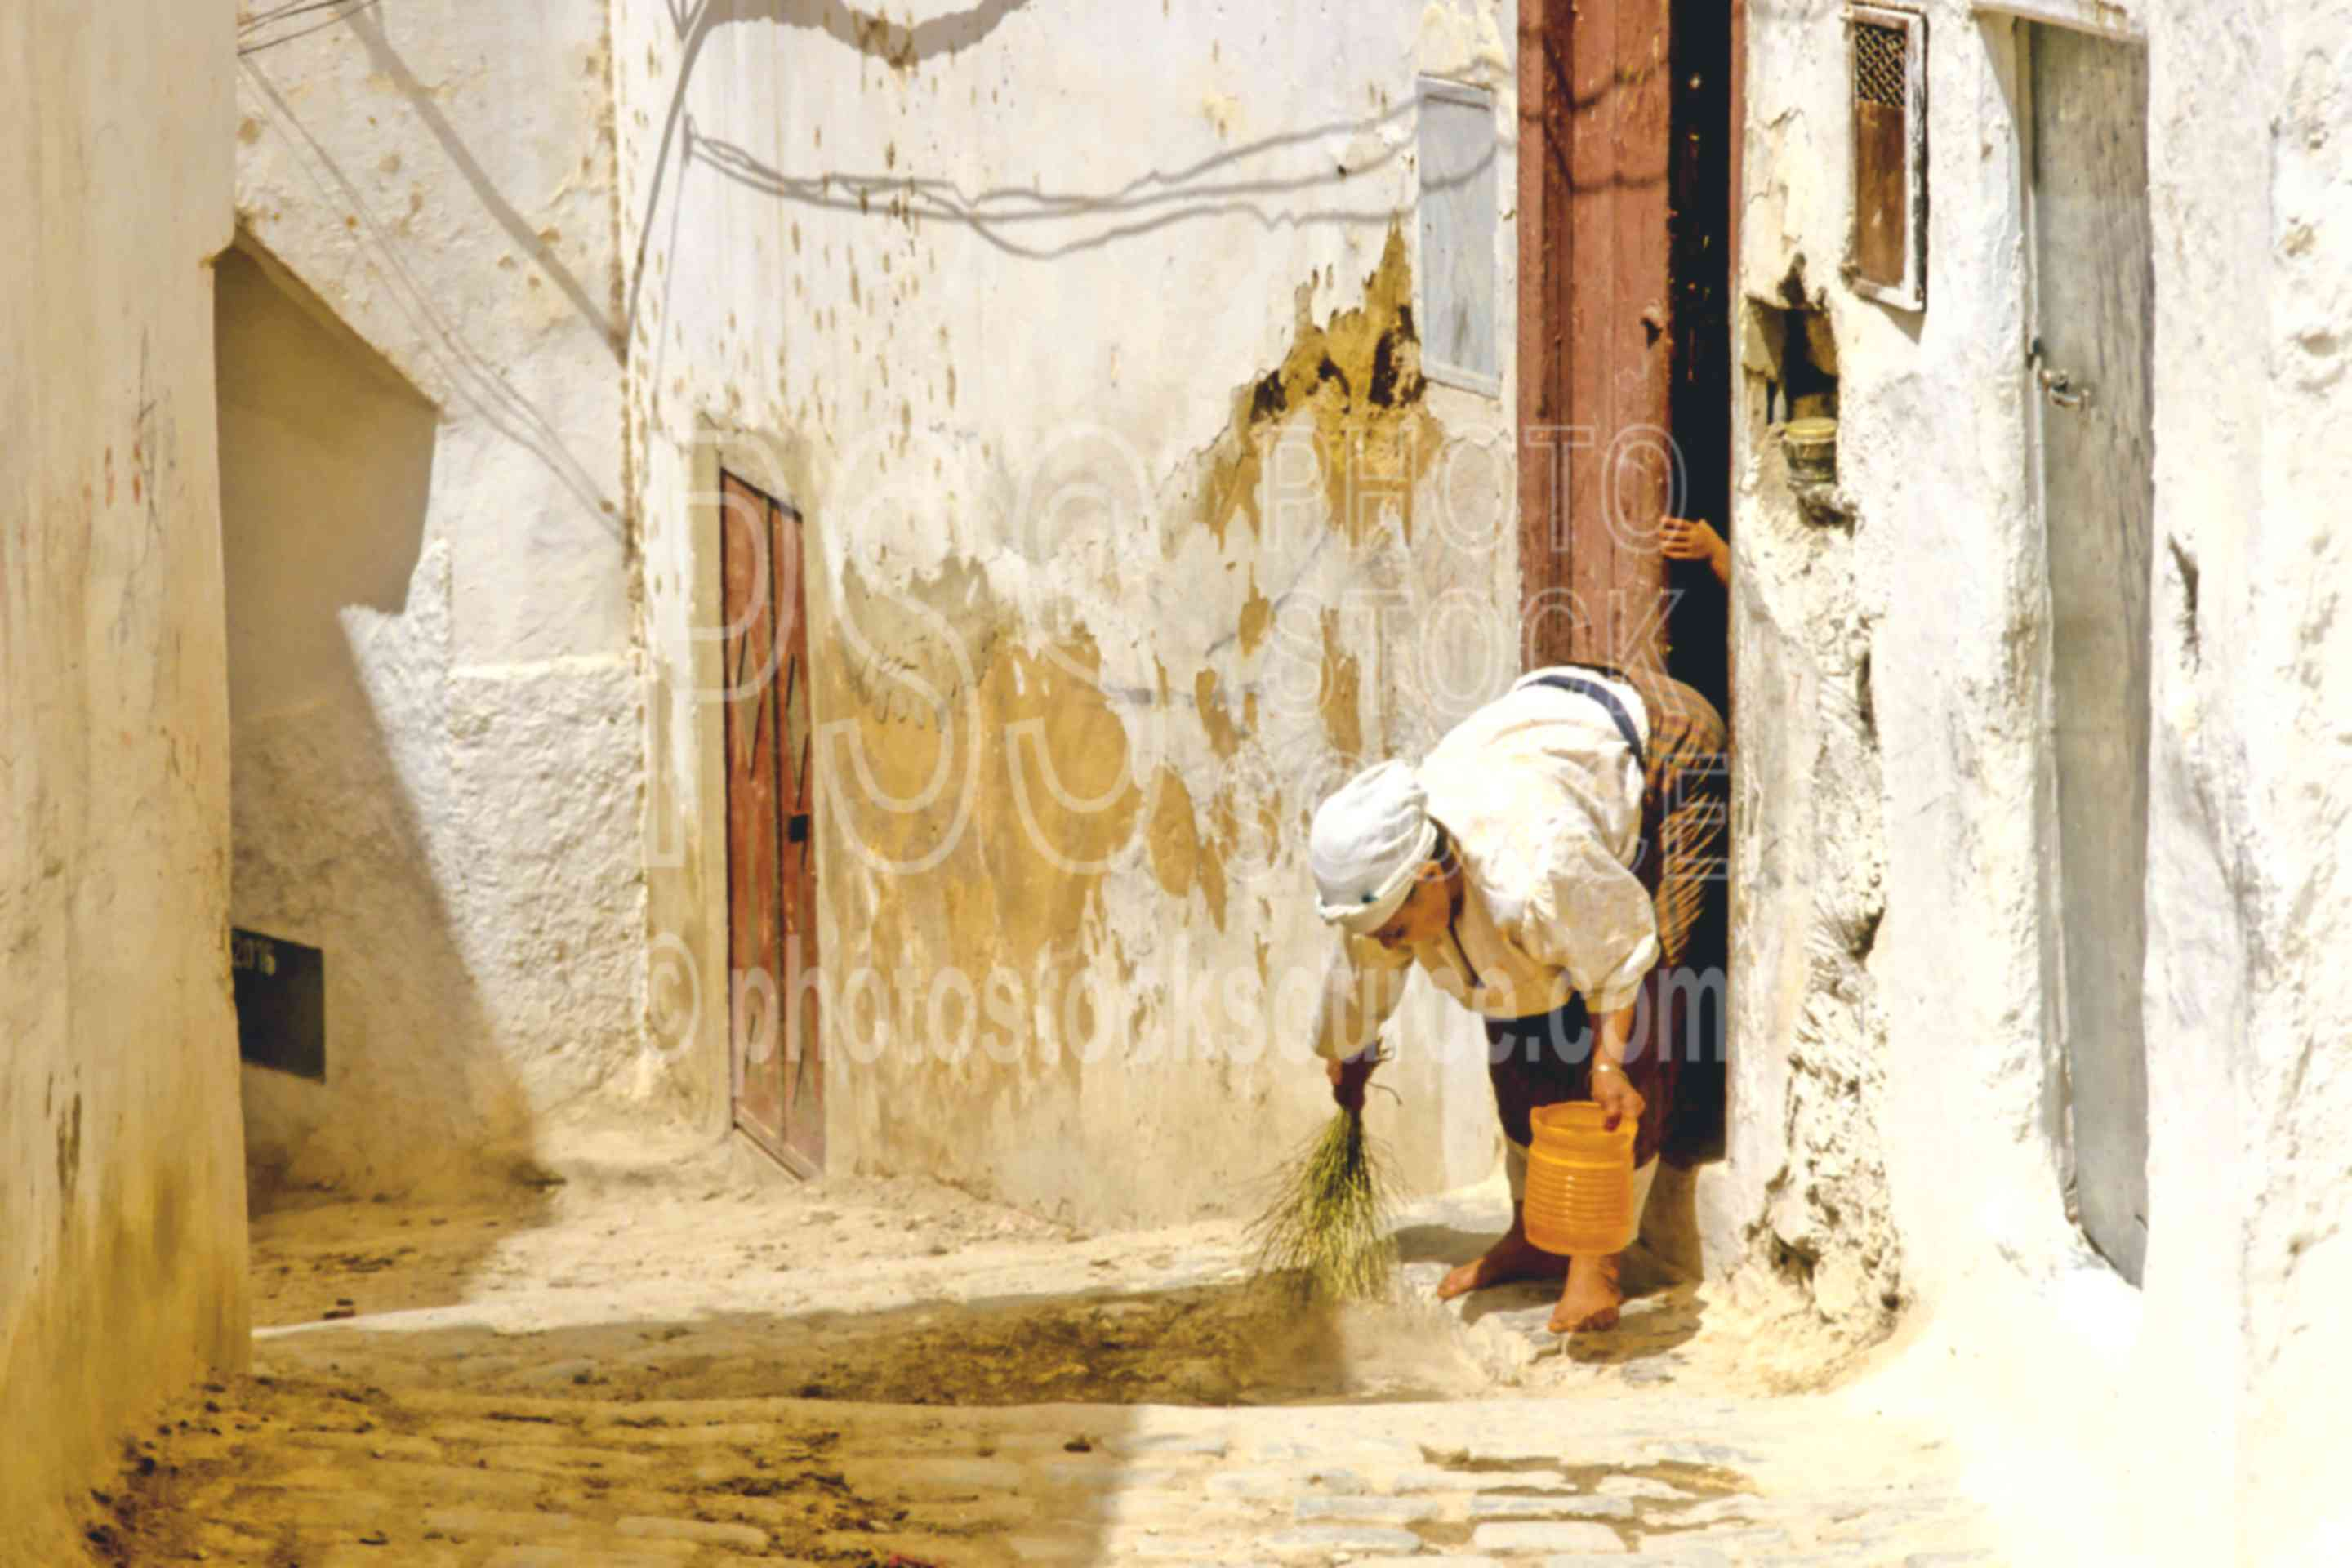 Cleaning the Step,alley,street,woman